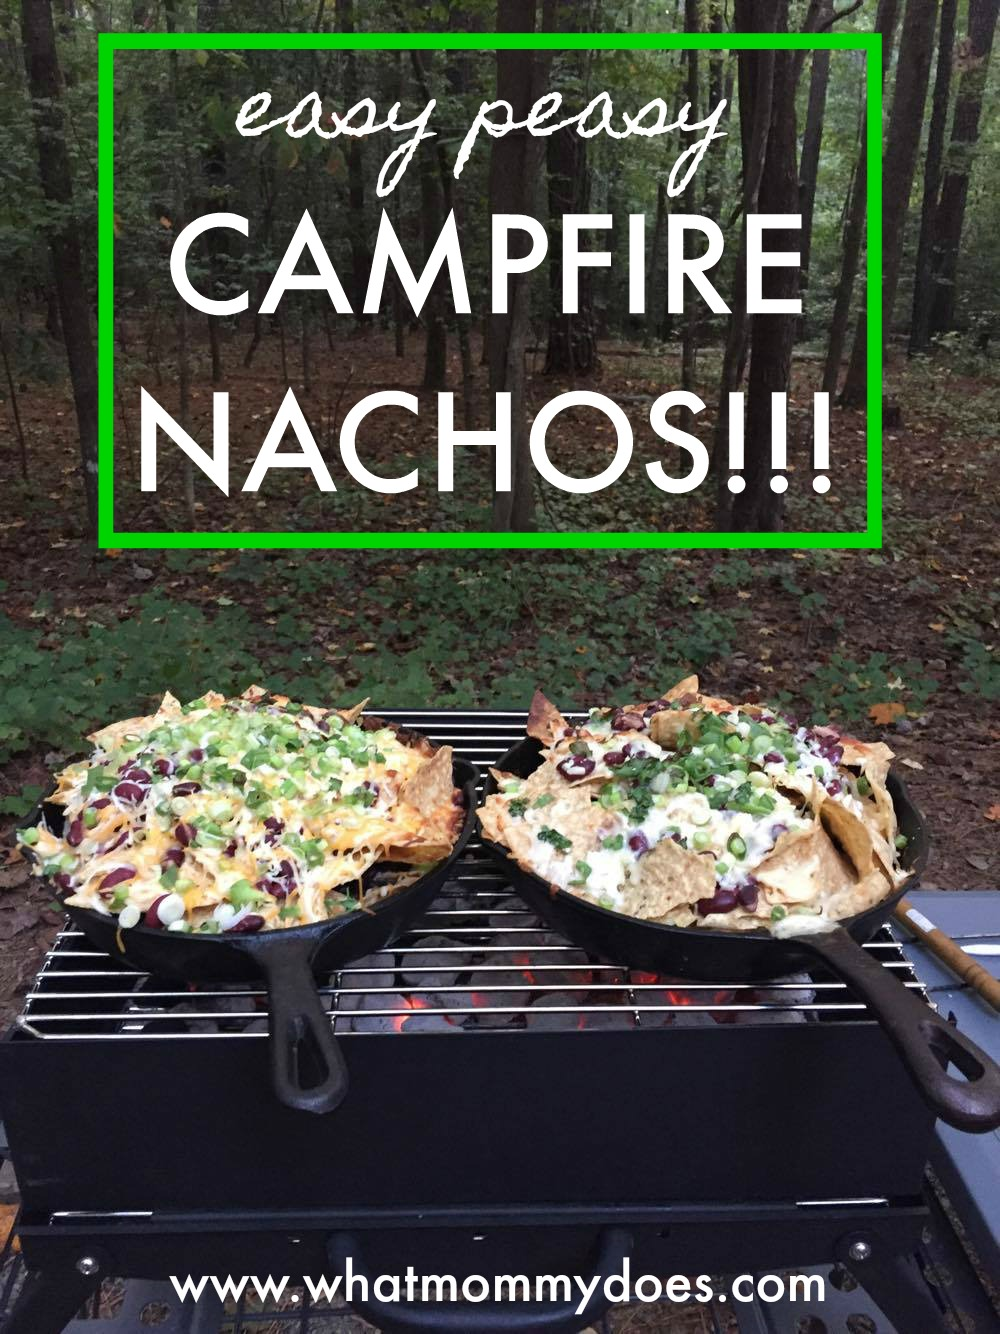 Nachos for our camping trip? Check!! This was the easiest starter for our camping dinner! We used black beans and Cabot cheese, then covered the cast iron skillet w/ foil to melt the cheese faster. Here's a full list of ingredients so you can make them too! You could also do it in a dutch oven or aluminum pan, on the fire or on a propane stove. | easy cast iron campfire nacho recipe, camping meal ideas